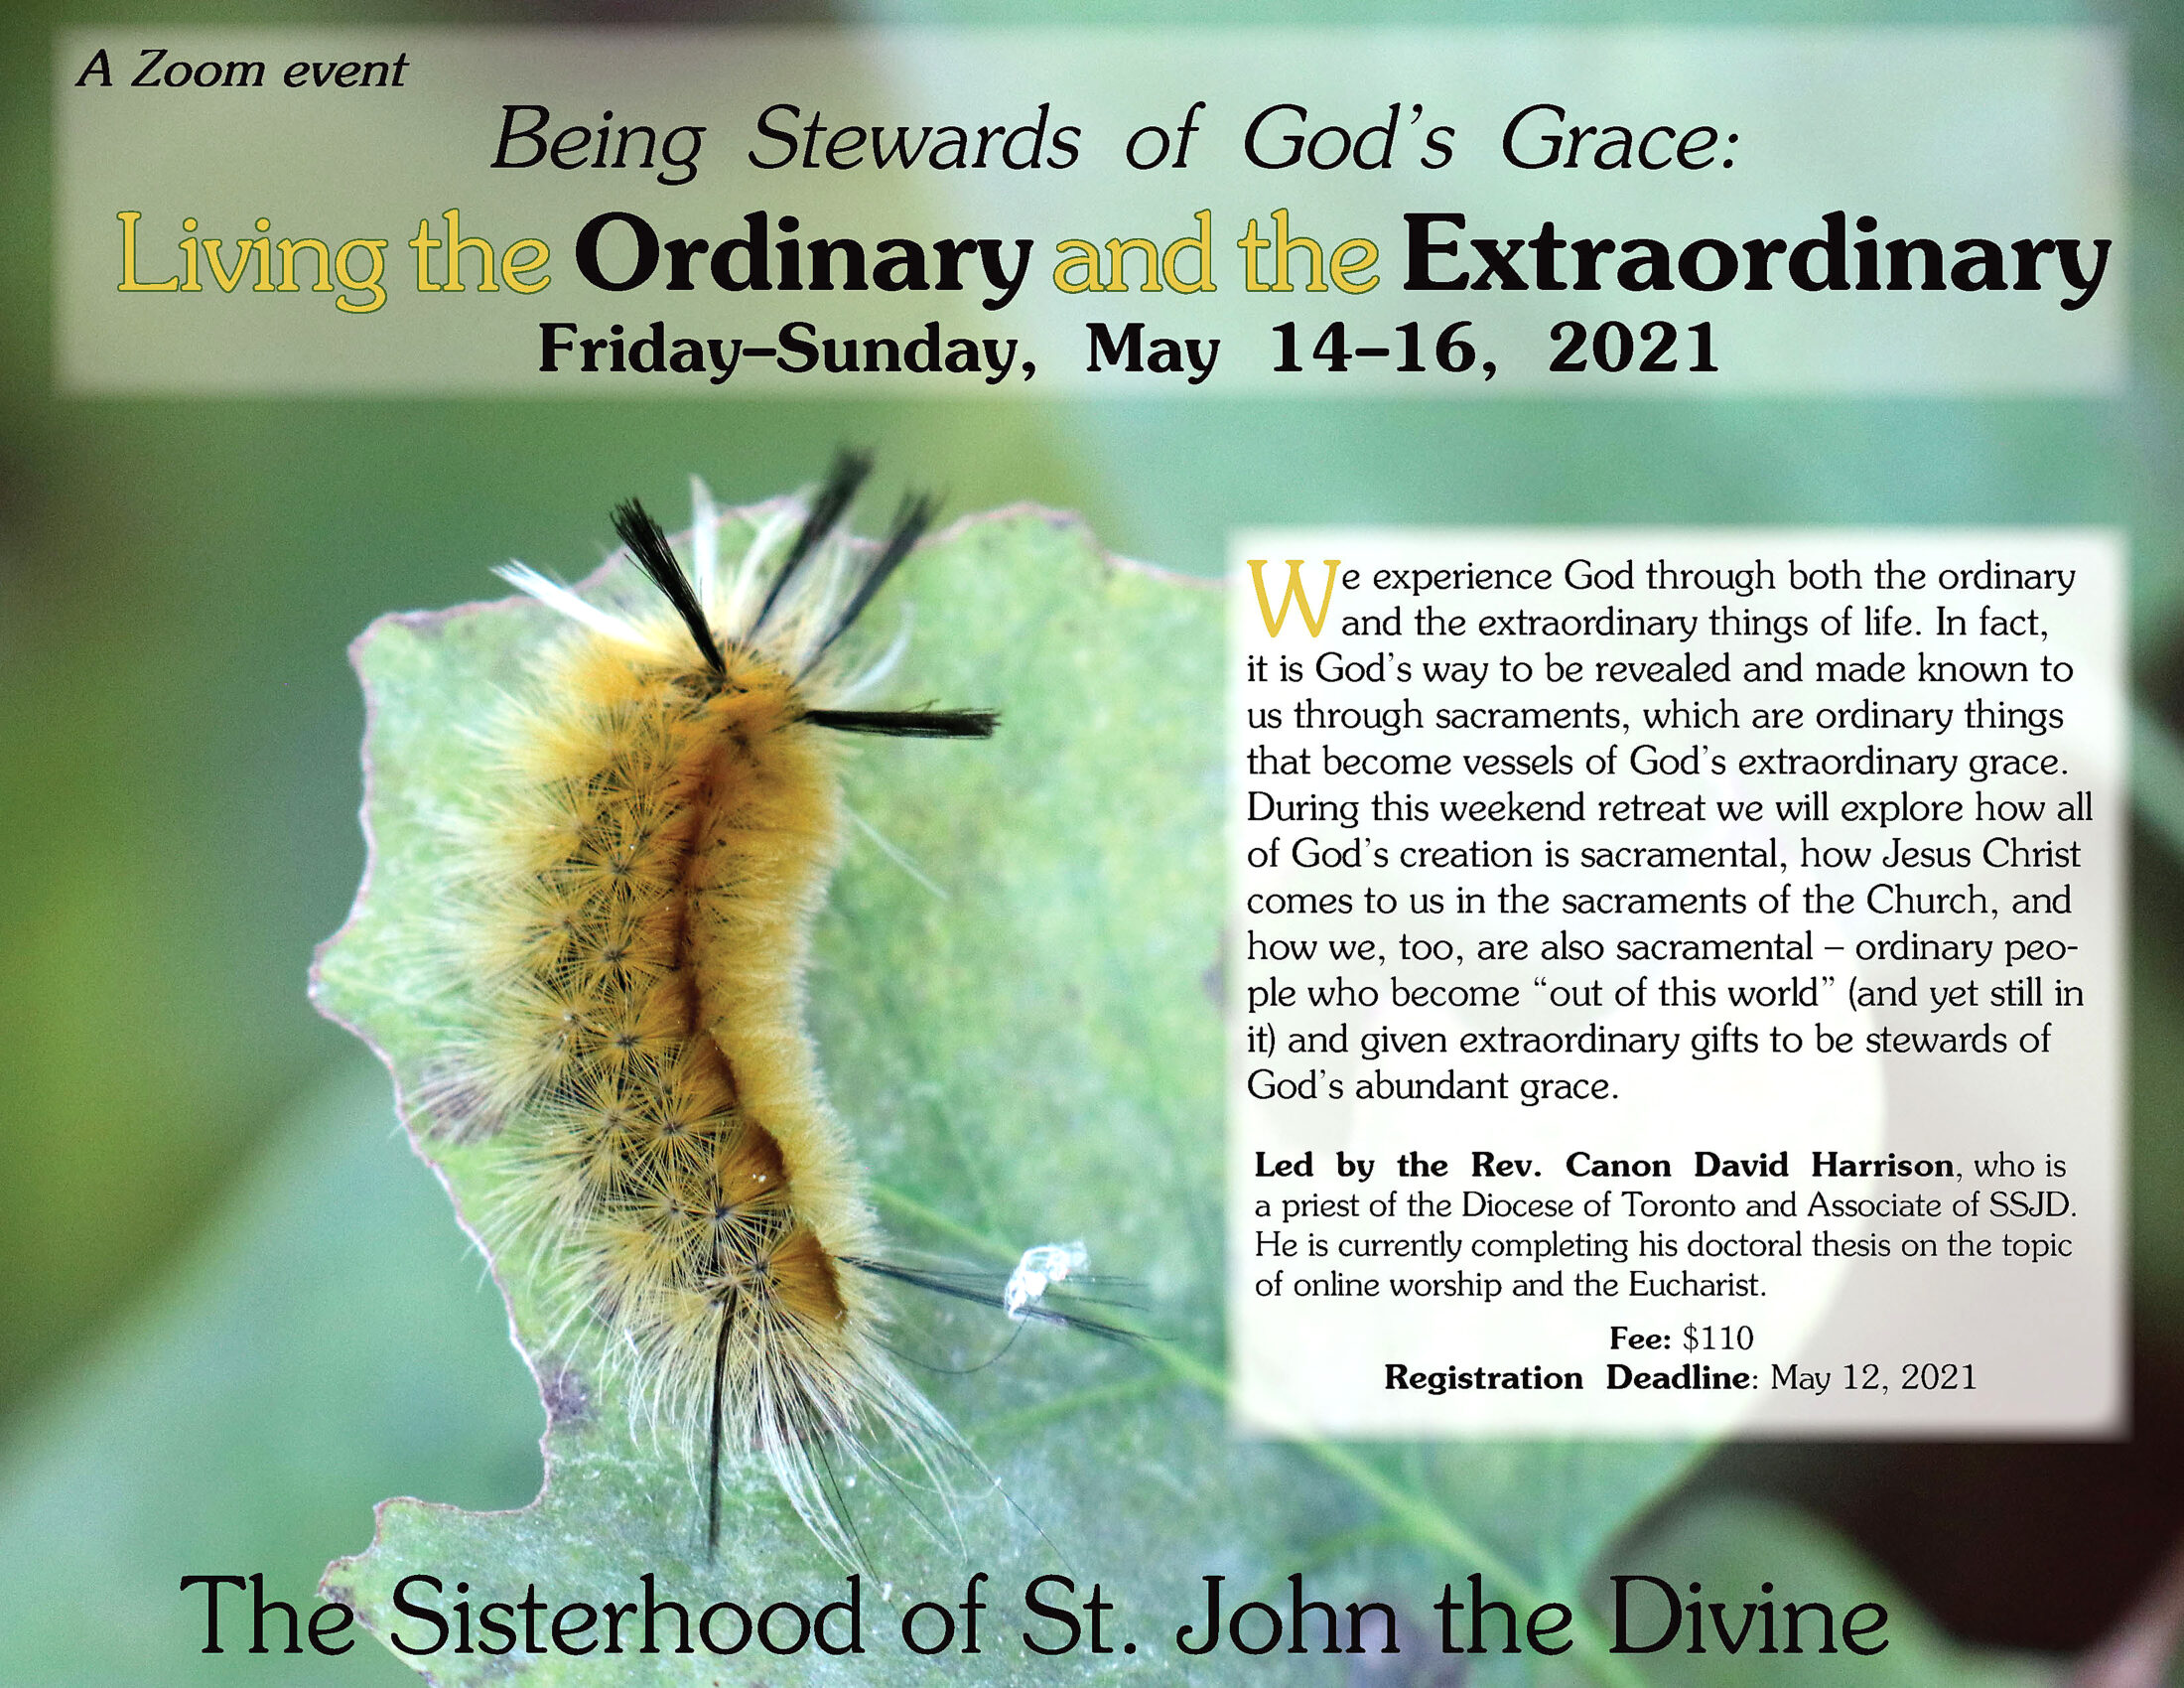 Being Stewards of God's Grace: Living the Ordinary and the Extraordinary